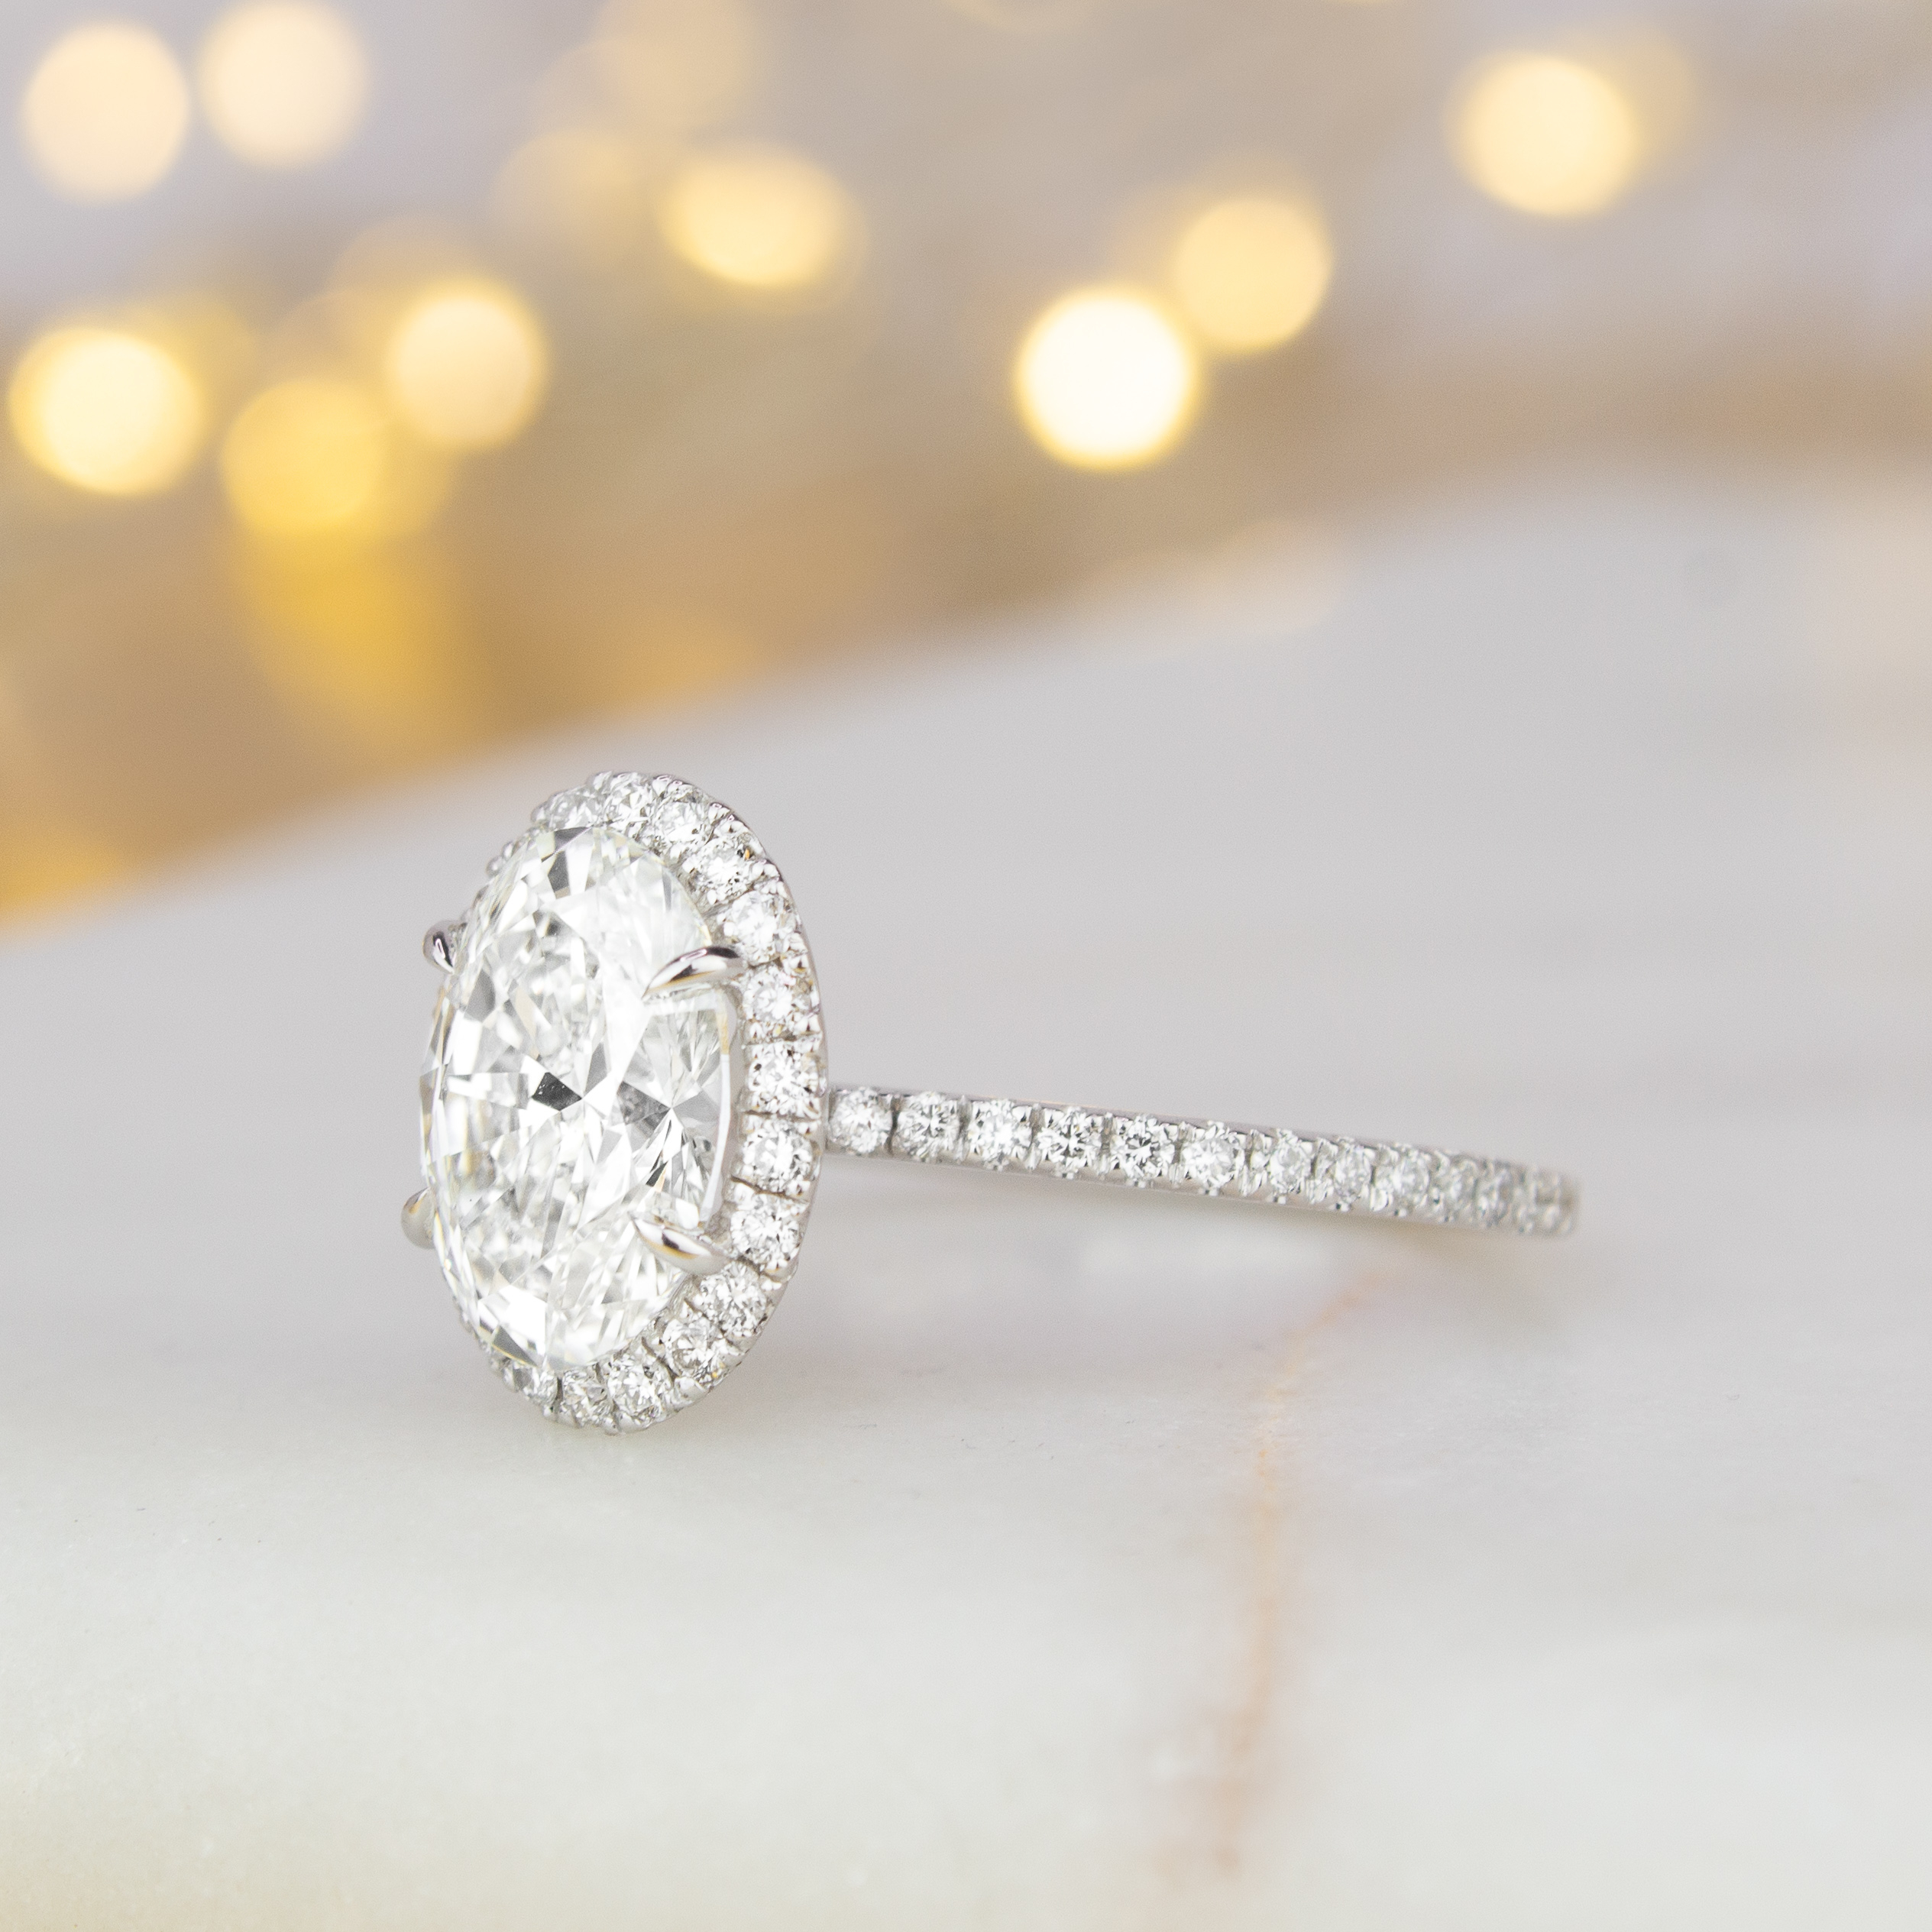 Sparkling Pavé Engagement Rings | Brilliant Earth Inside Most Recently Released Sparkling Pavé Band Rings (View 4 of 25)